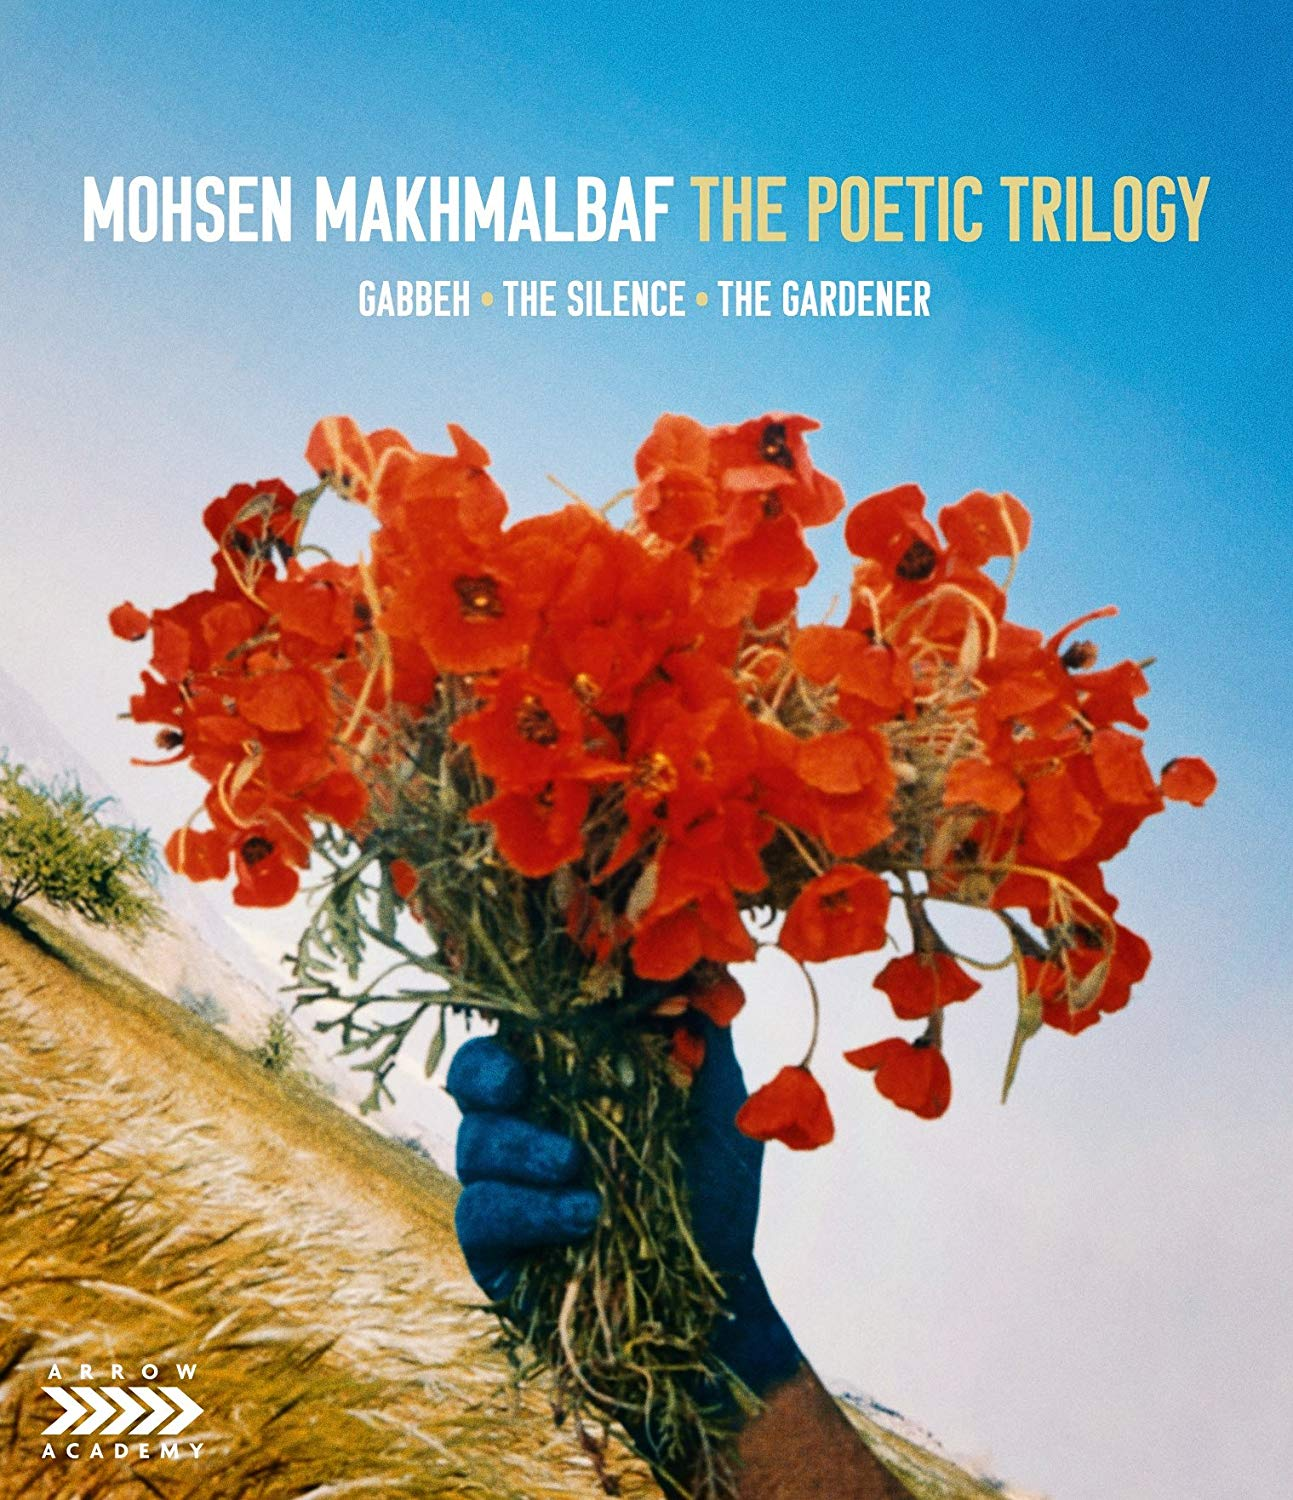 Blu-ray Review: Mohsen Makhmalbaf: The Poetic Trilogy on